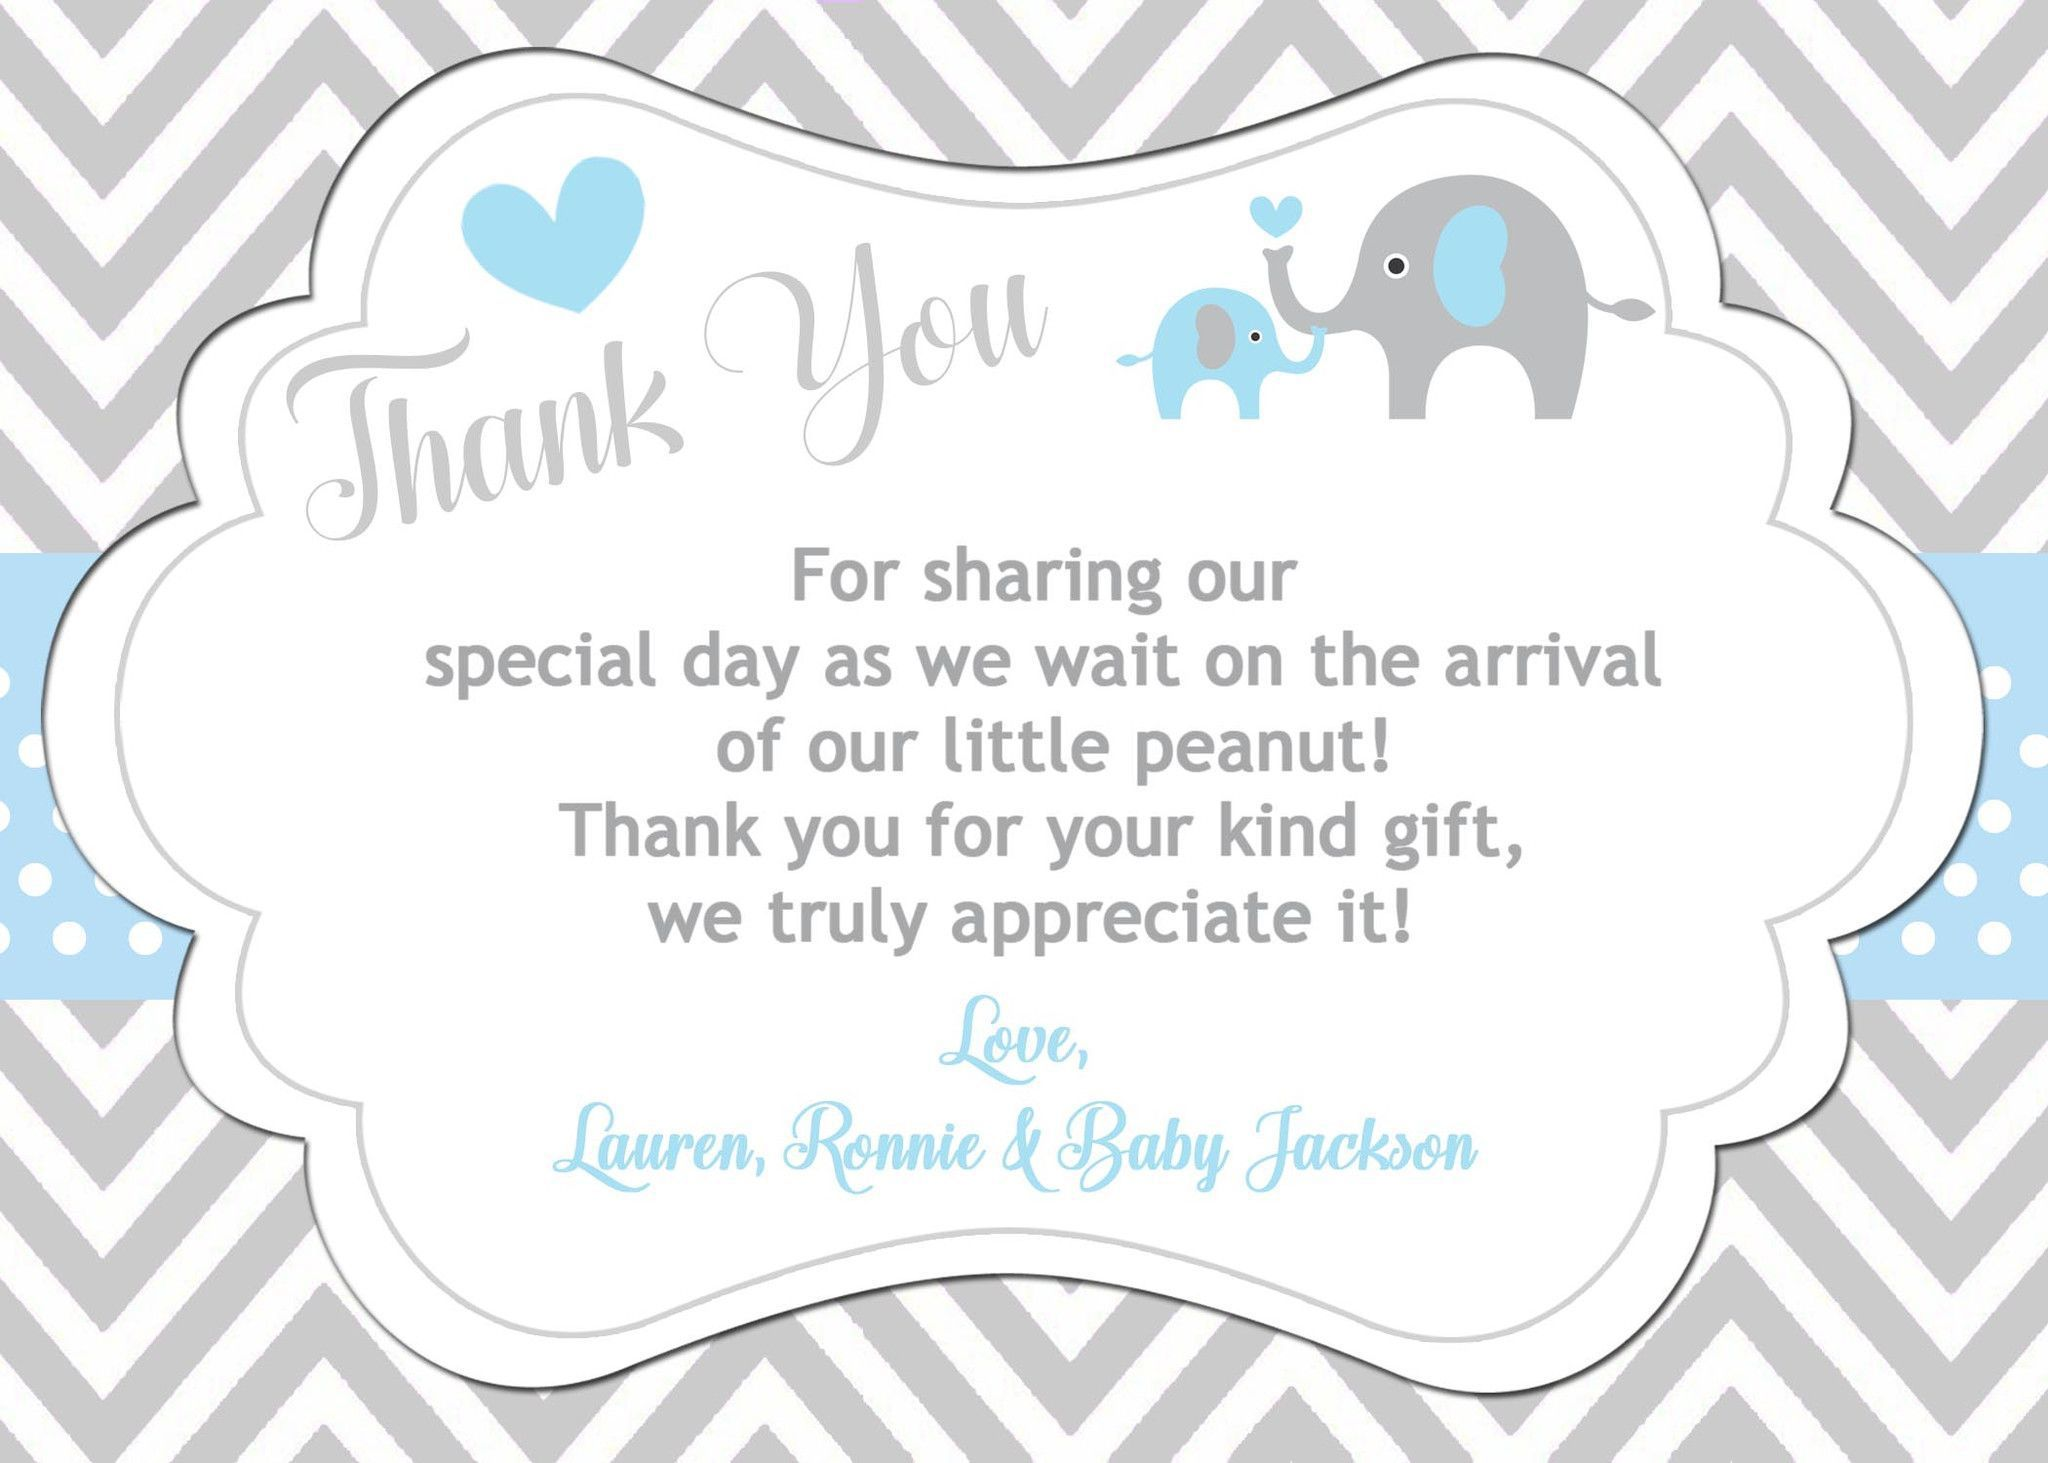 003 Sensational Thank You Note Wording Baby Shower High Definition  For Hosting CardFull